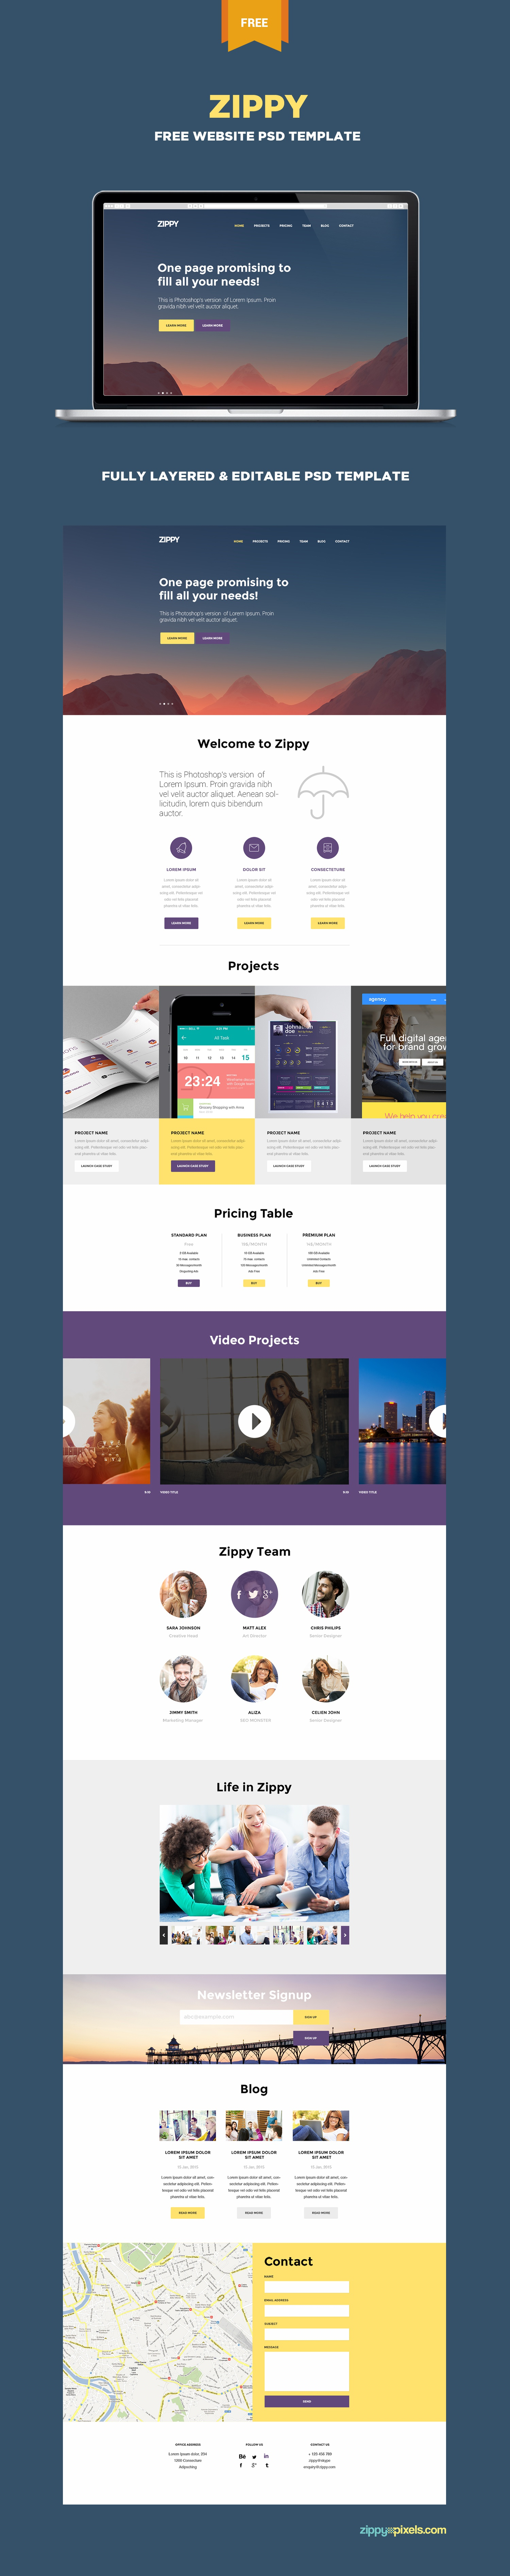 Web templates free download html psd